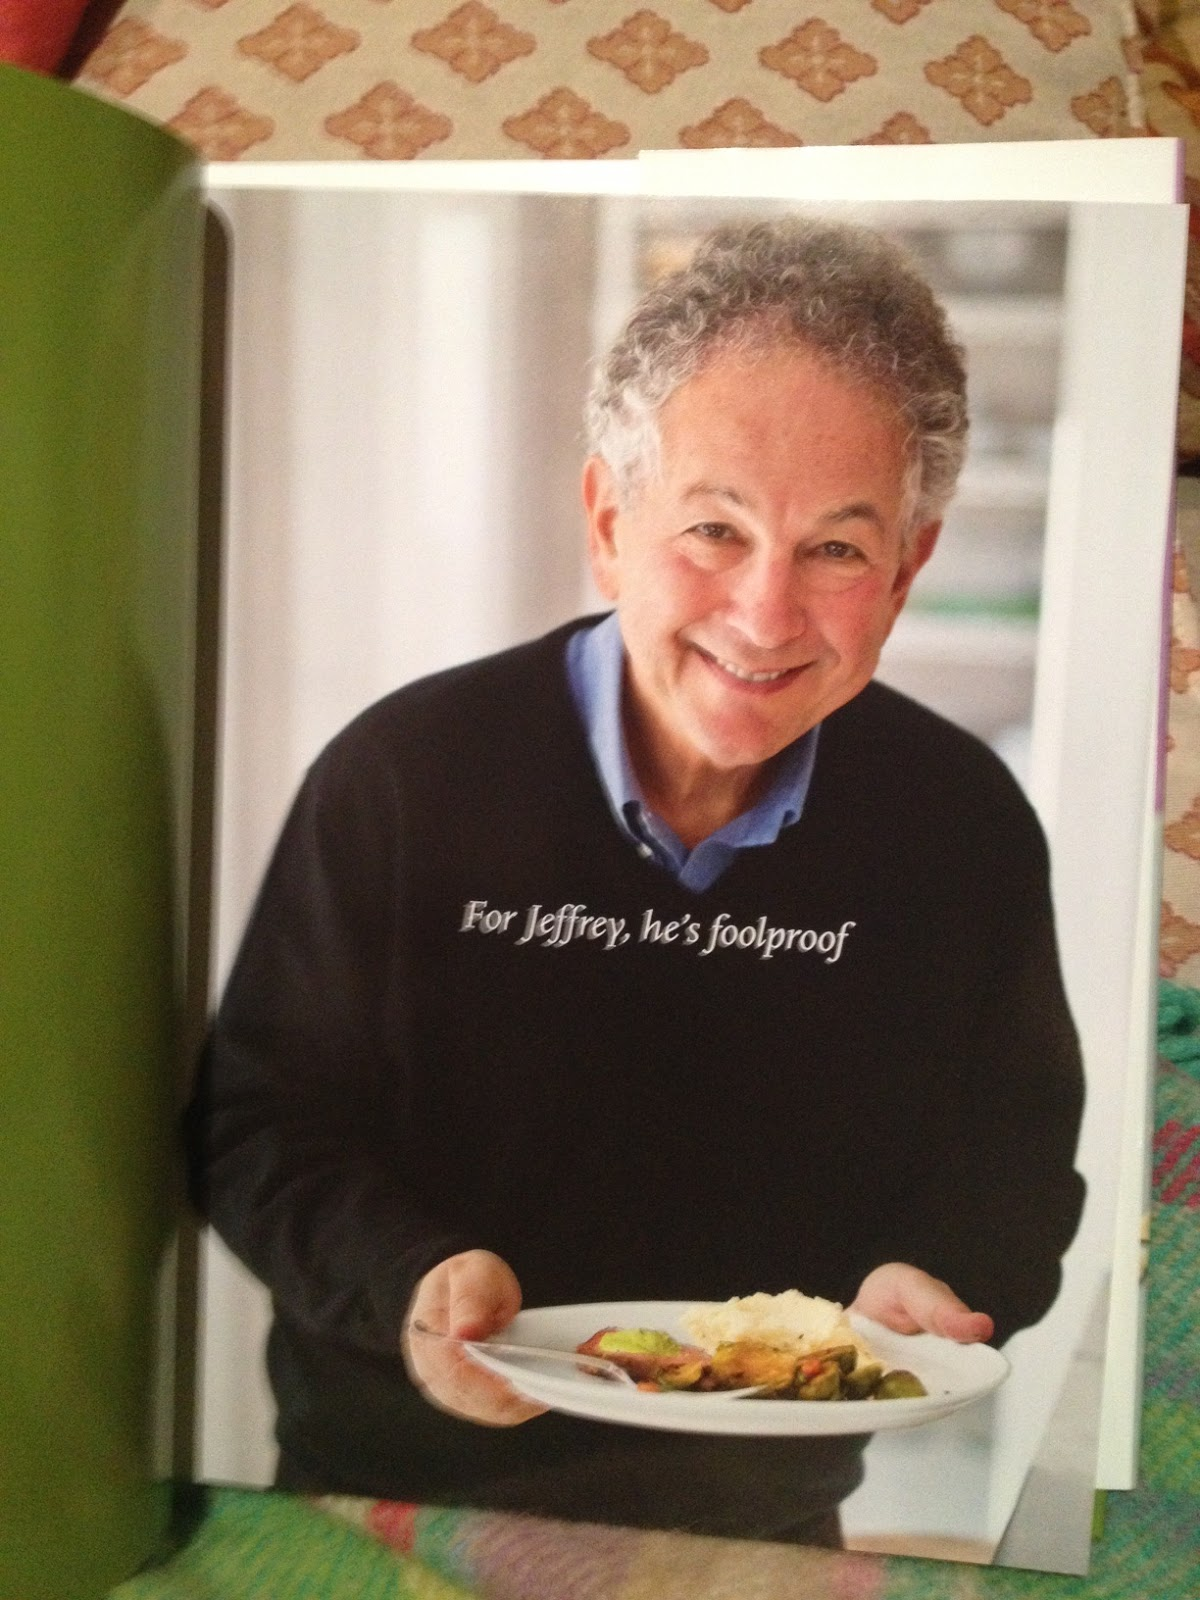 ina garten divorce jeffrey jeffrey garten biography view original